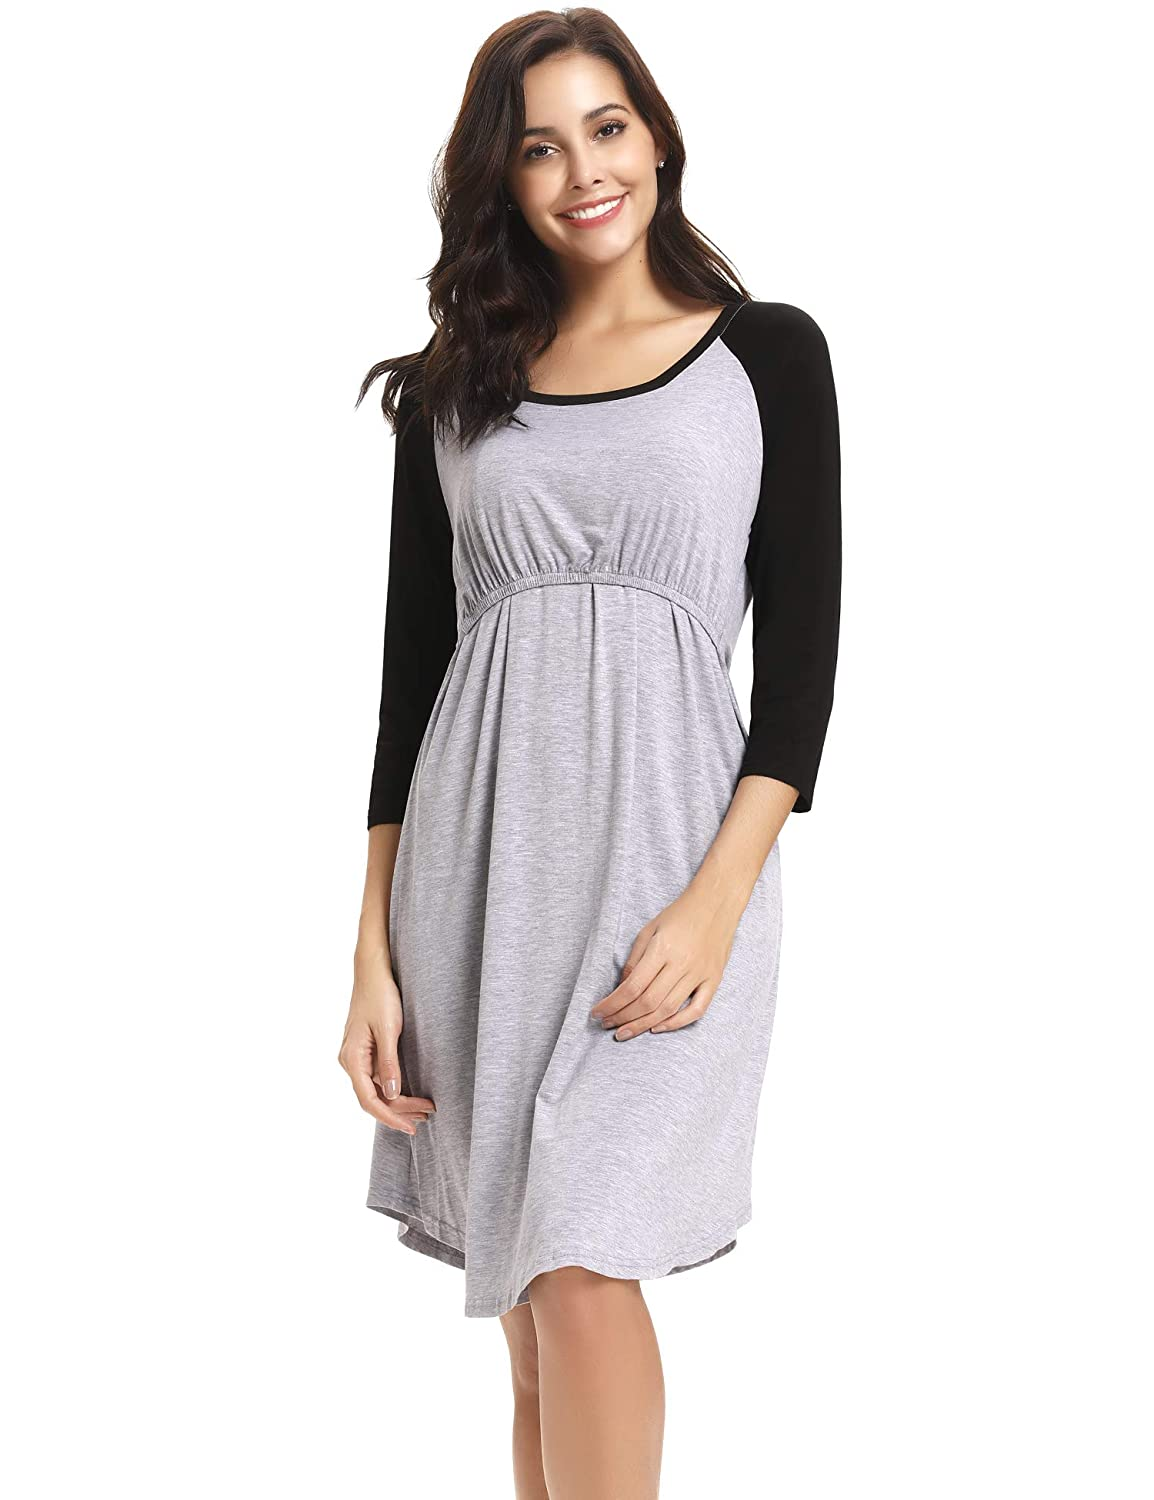 441ac2e542 Aibrou Womens Maternity Dress Nursing Nightgown for Breastfeeding  Nightshirt Sleepwear S-XXL Gray at Amazon Women s Clothing store